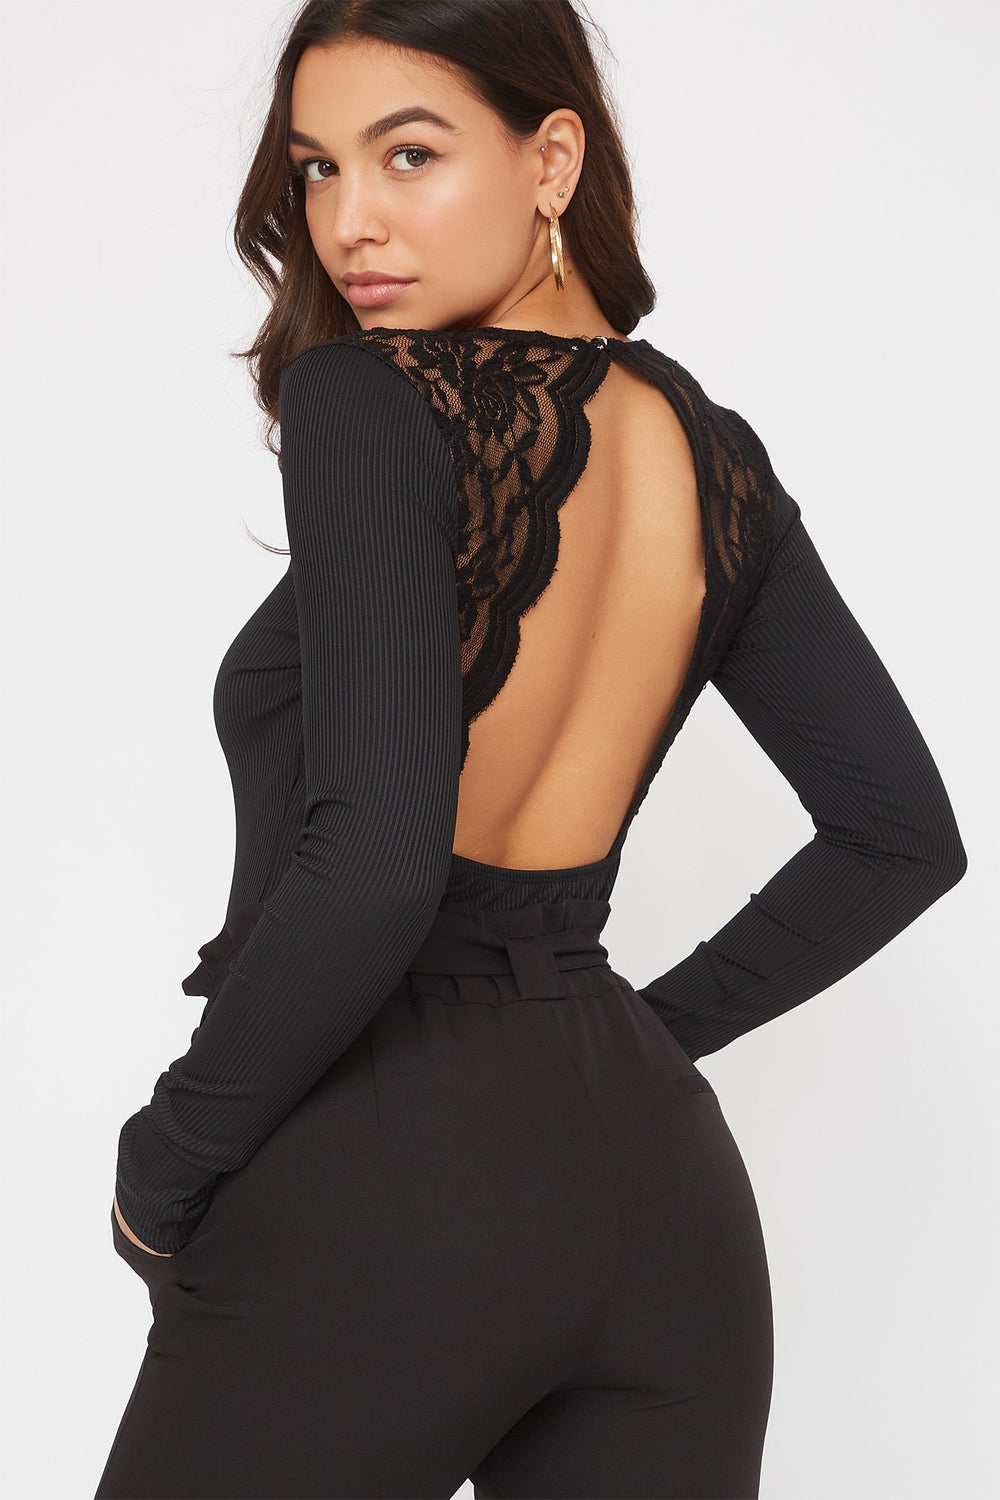 V-Neck Lace Open Back Bodysuit Black